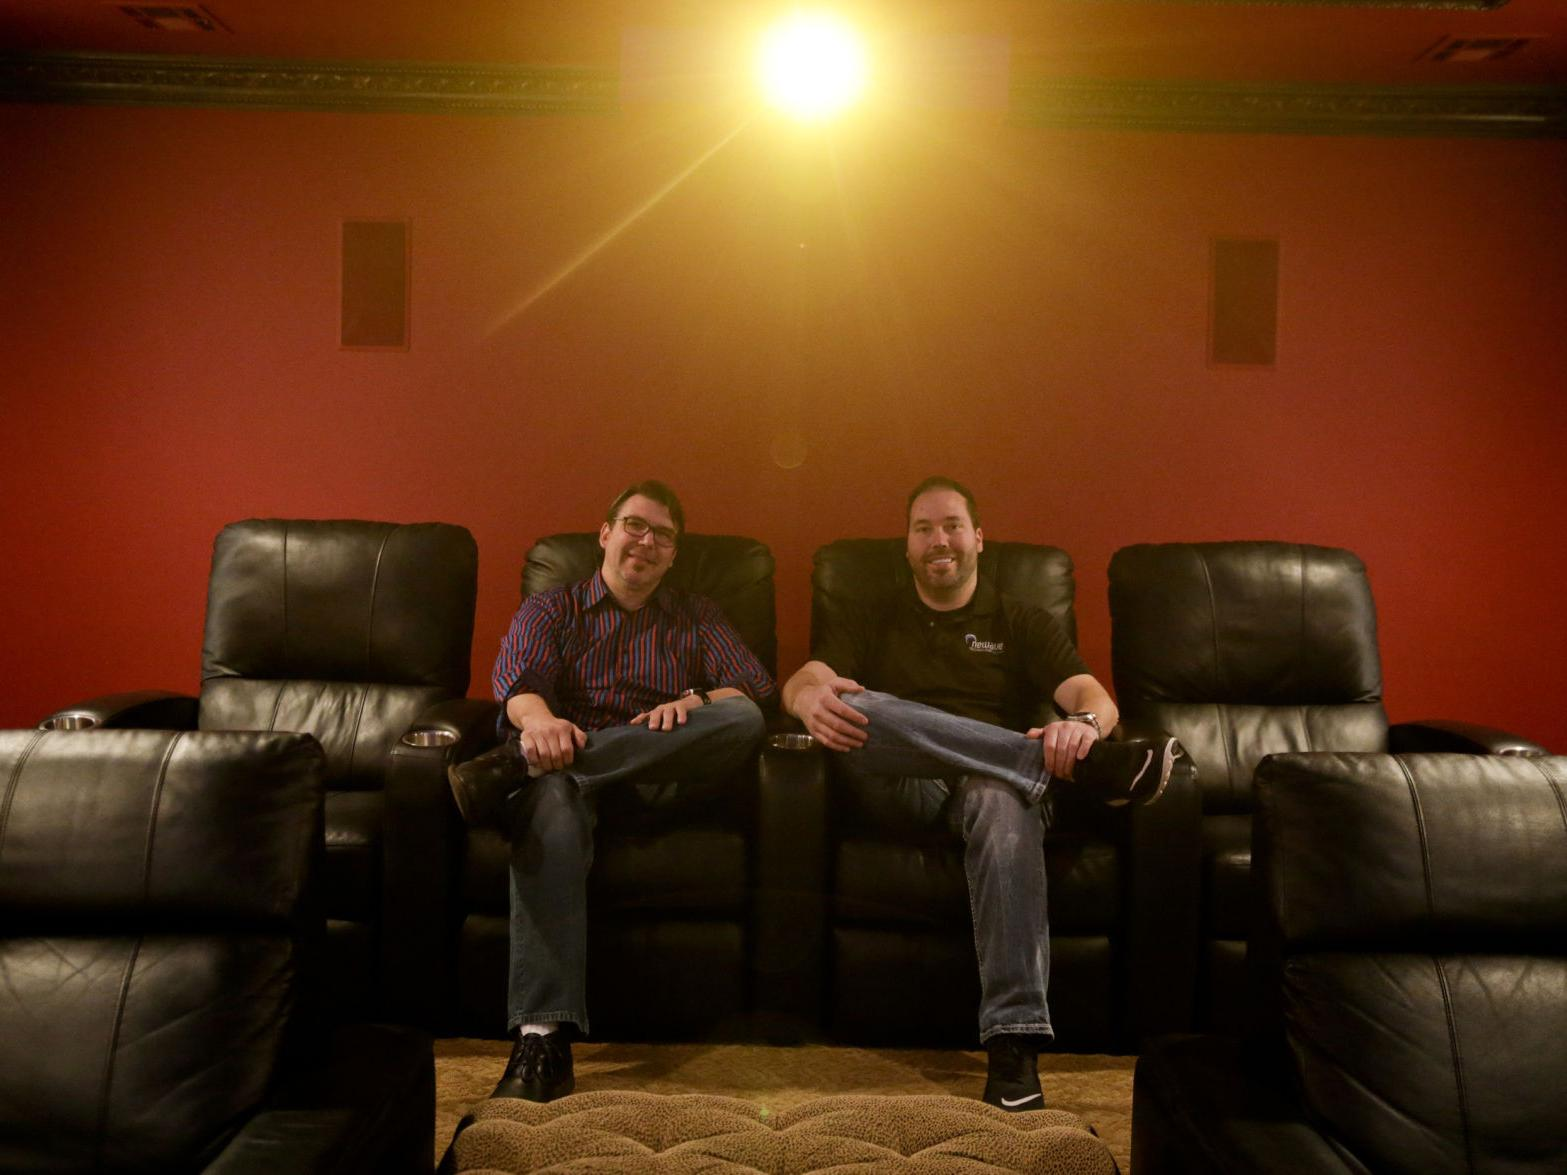 Sound Design Get The Most Out Of Your Home Theater System Tulsa World Magazine Tulsaworld Com